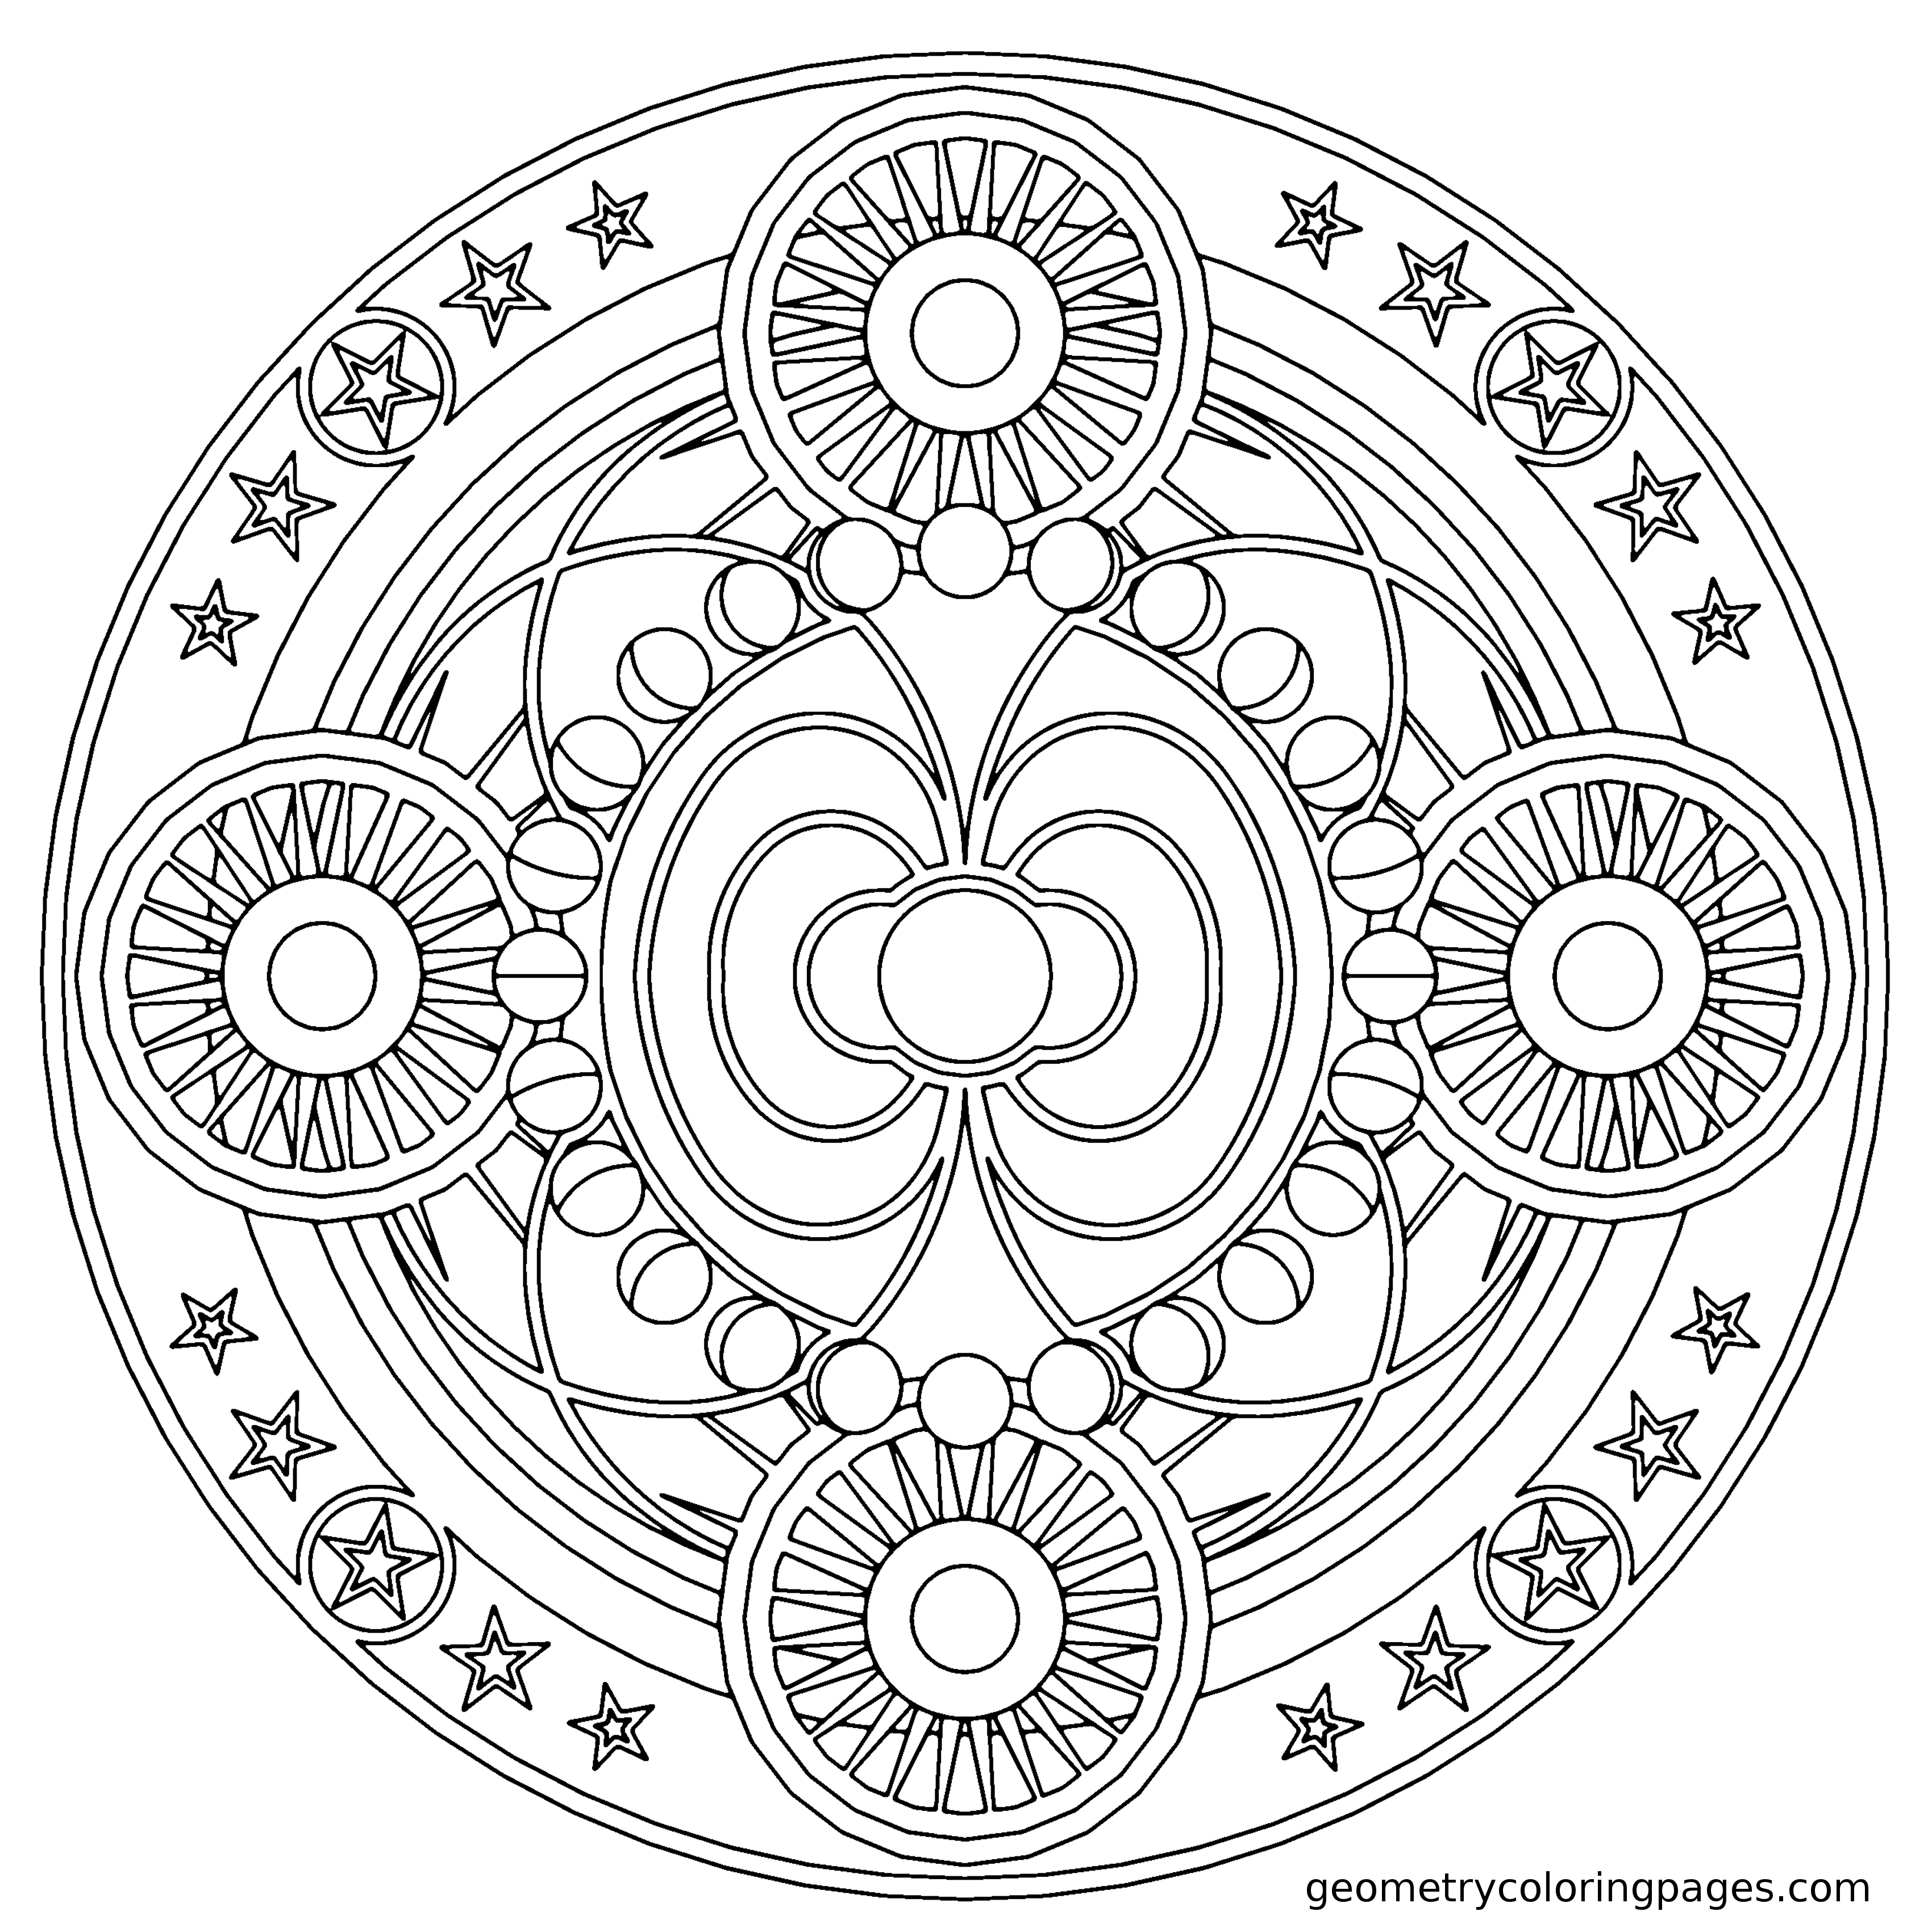 3400x3400 New Coloring Flower Mandala Coloring Page Expert Level Book Free